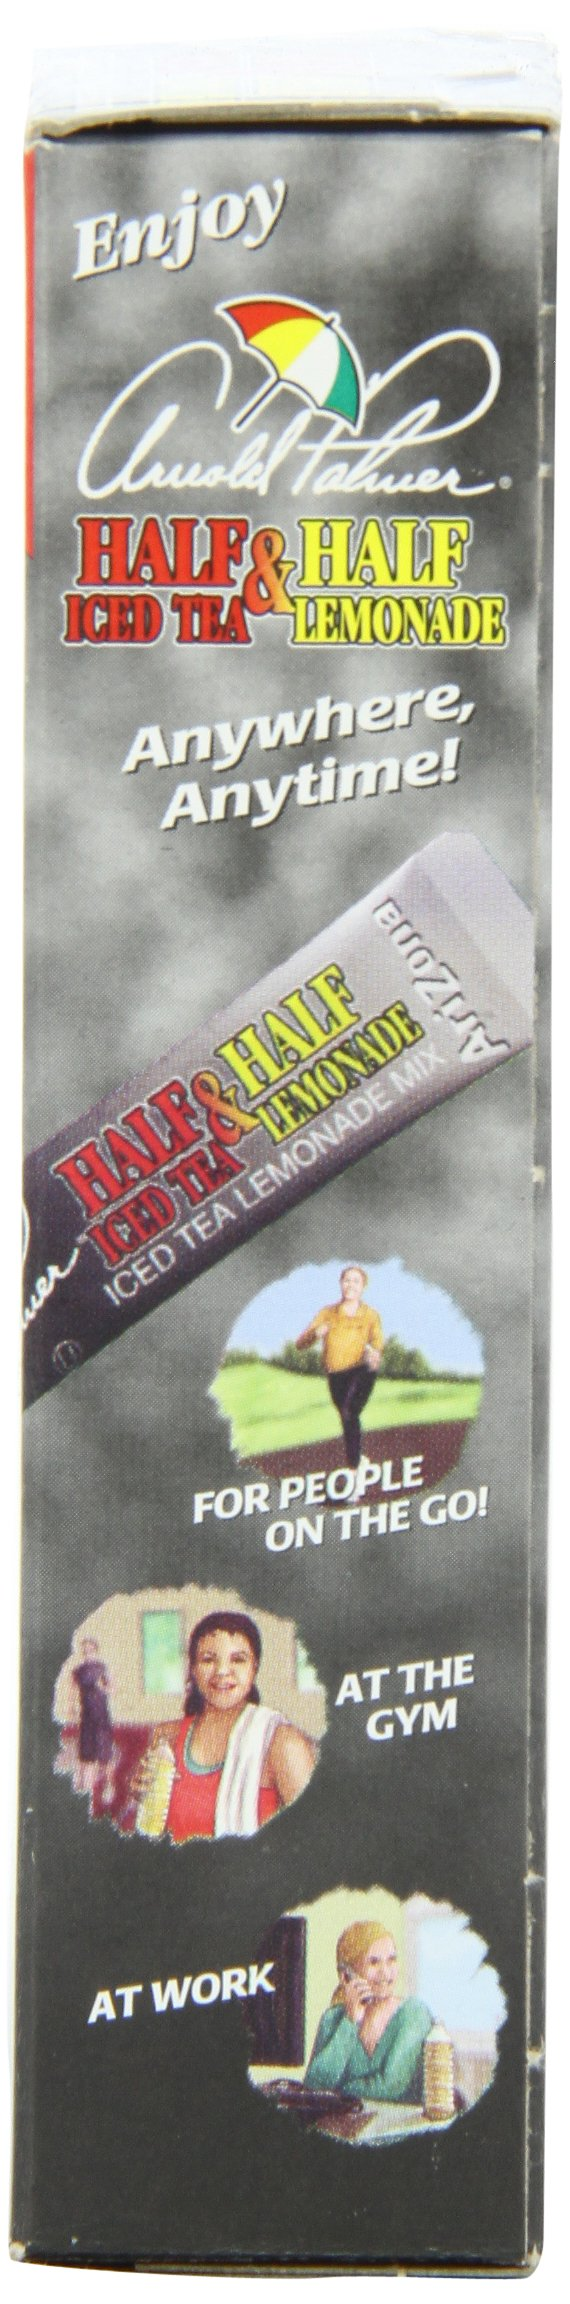 AriZona Arnold Palmer Half Lemonade Half Iced Tea Stix, 10 Count Per Box (Pack of 6), Low Calorie Single Serving Drink Powder Packets, Just Add Water for a Deliciously Refreshing Iced Tea Beverage by Arizona (Image #4)